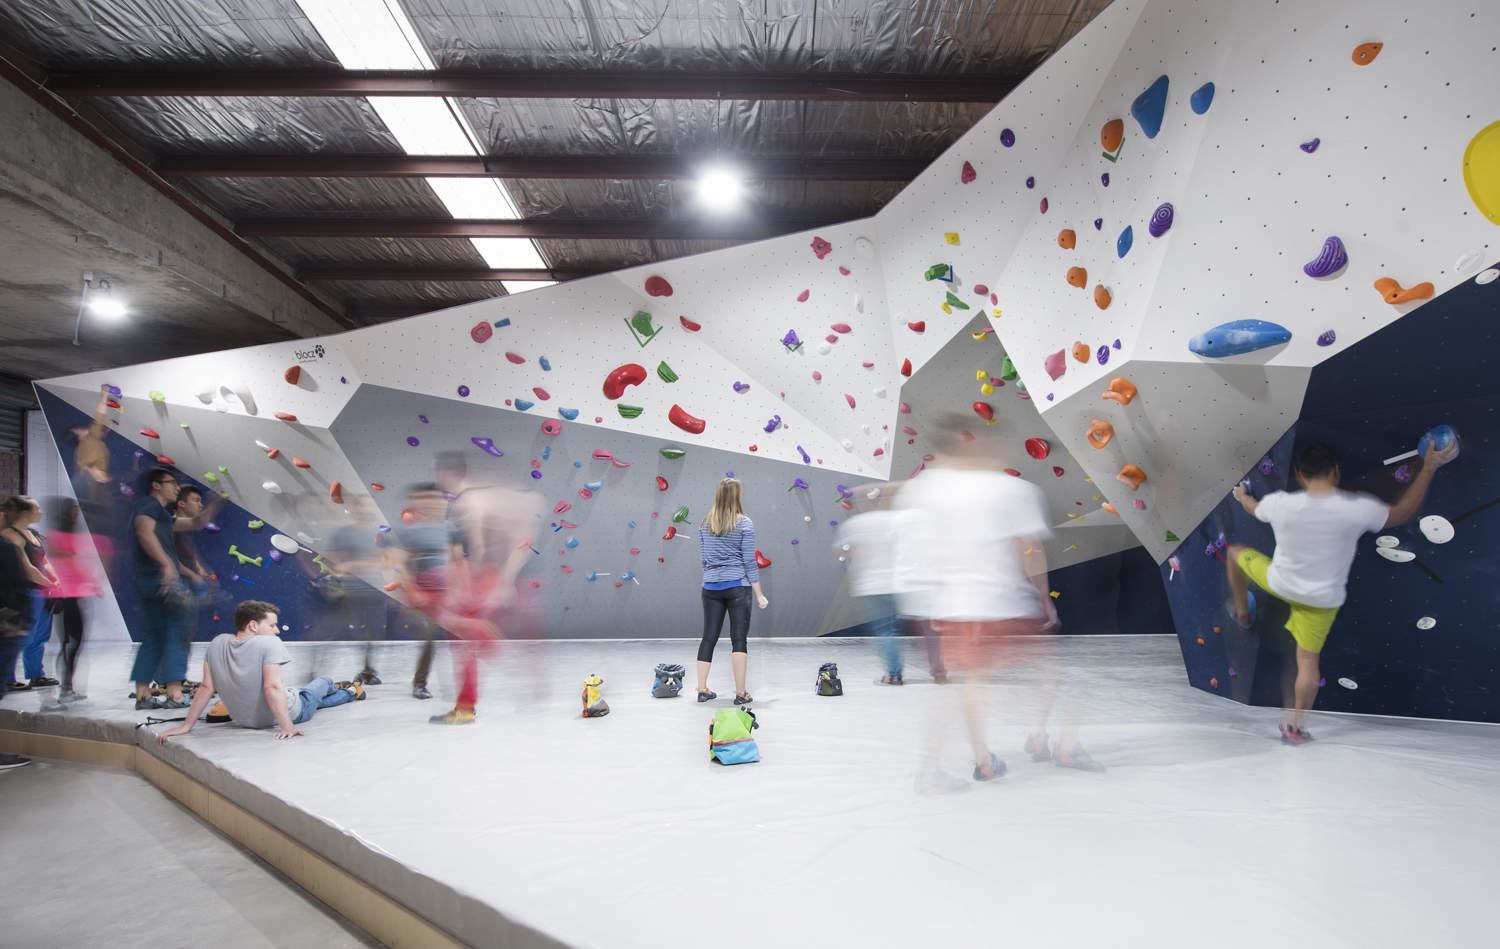 green sheep collective commercial architect melbourne sustainable design bouldering gymnasium northcote.jpg